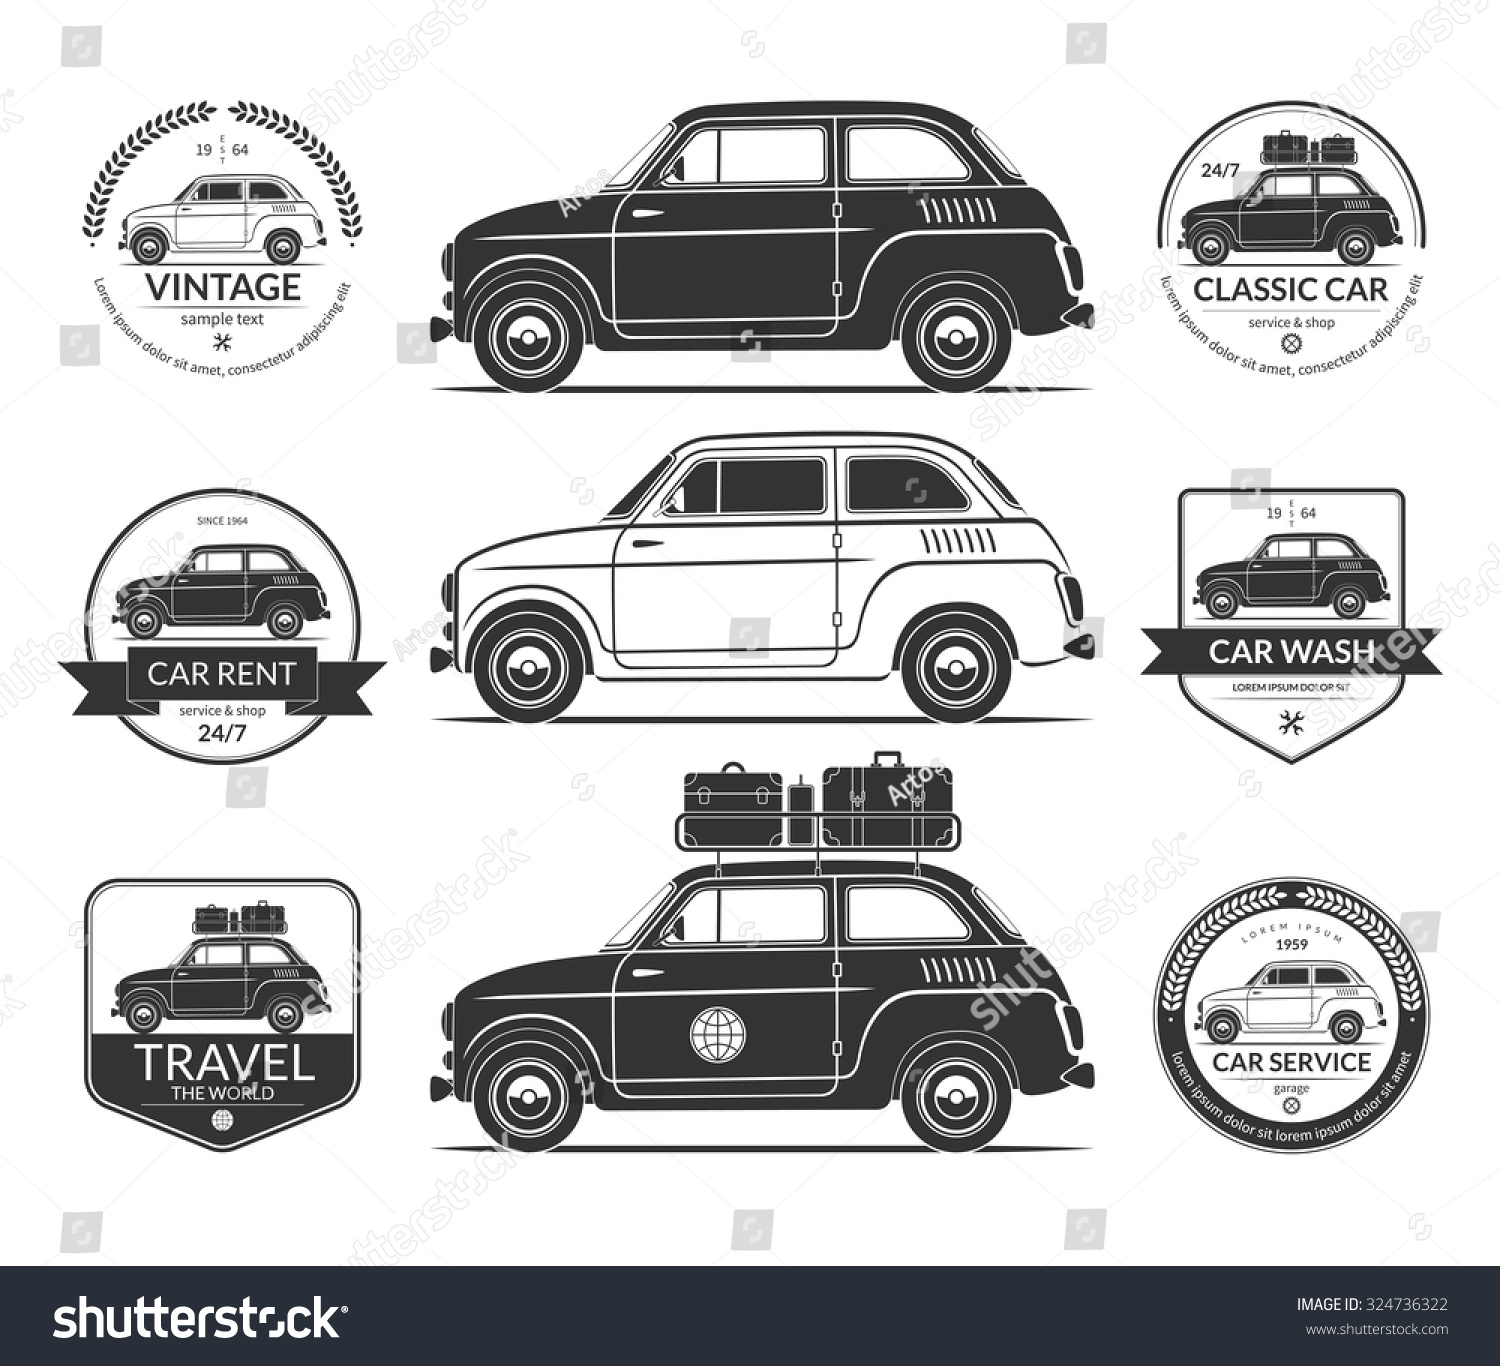 Set Small Classic Car Silhouettes Vintage Stock Vector (2018 ...